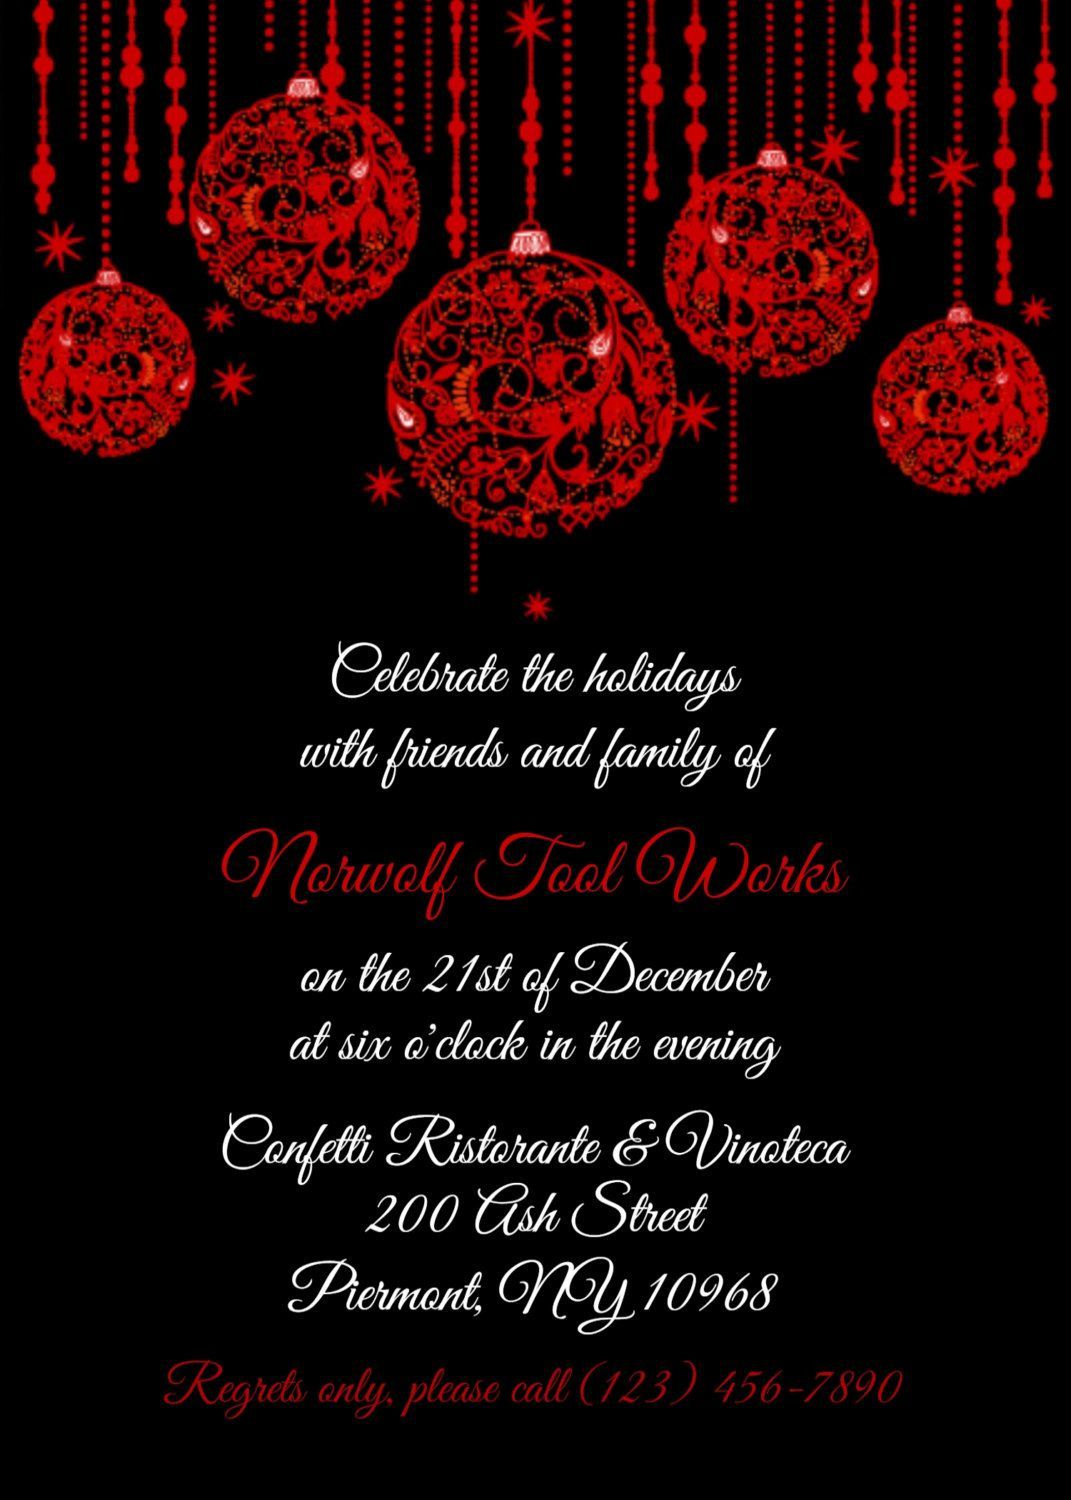 006 Unbelievable Free Busines Holiday Party Invitation Template Image  Templates Printable OfficeFull